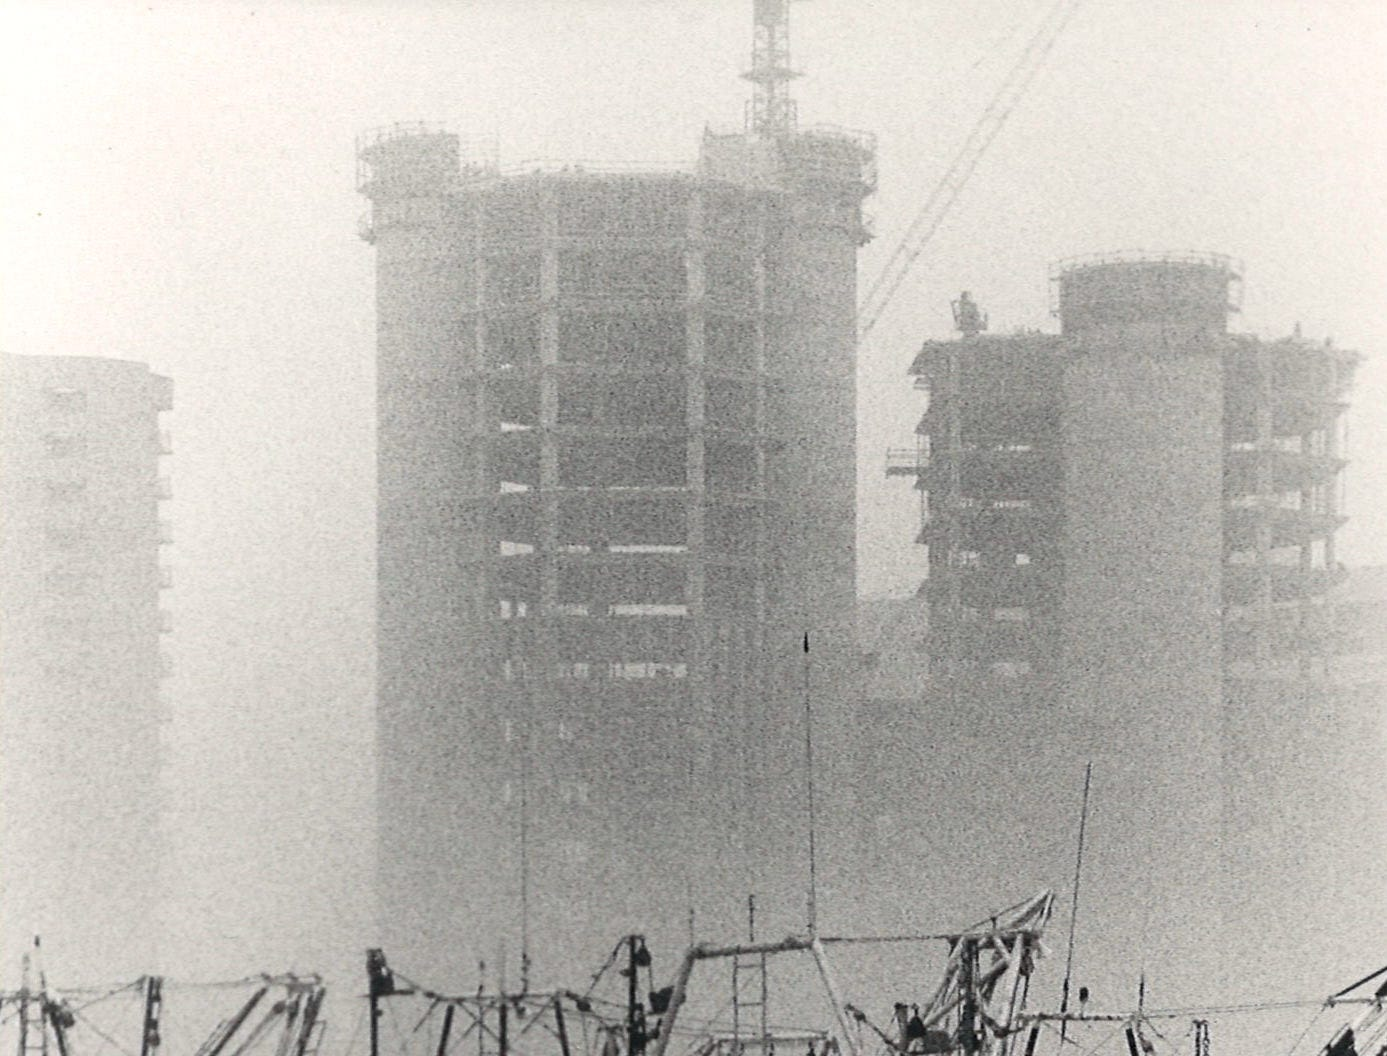 Shrimp boats in the fog at the Peopls St. T-head in Corpus Christi on Jan. 15, 1987. In the background, One Shoreline Plaza is under construction.